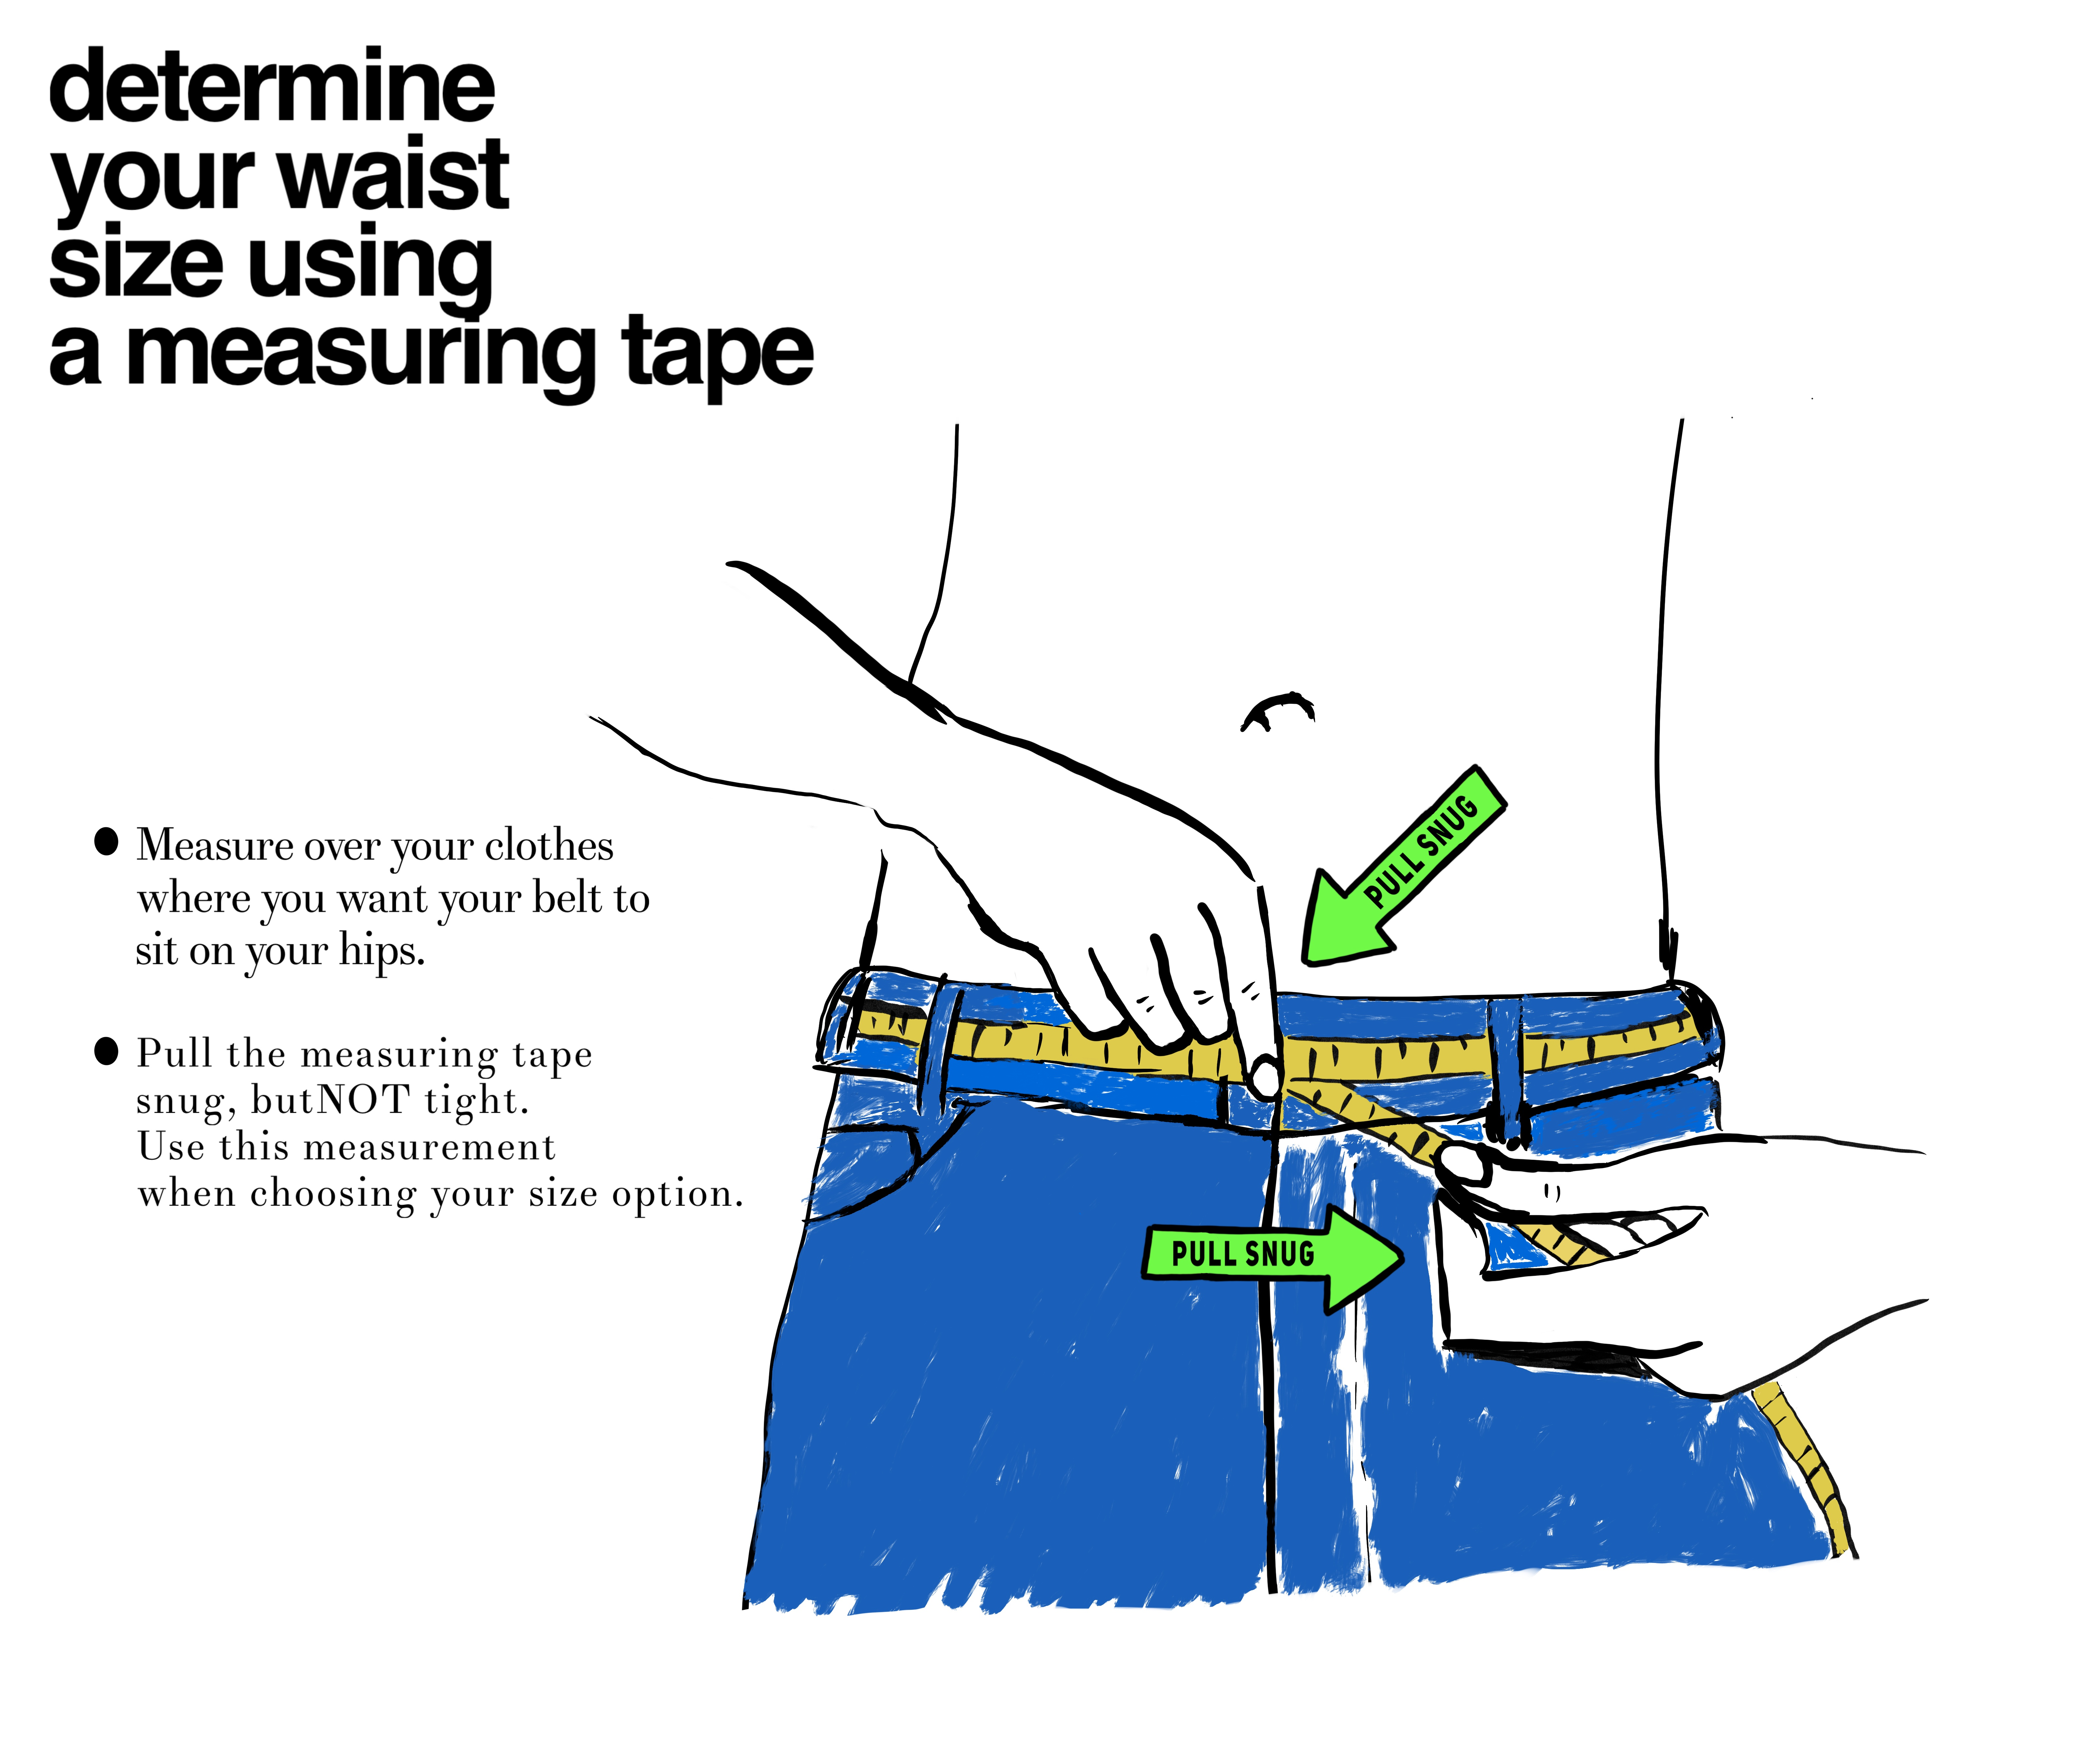 new-over-pant-sizing-diagram-2.jpg